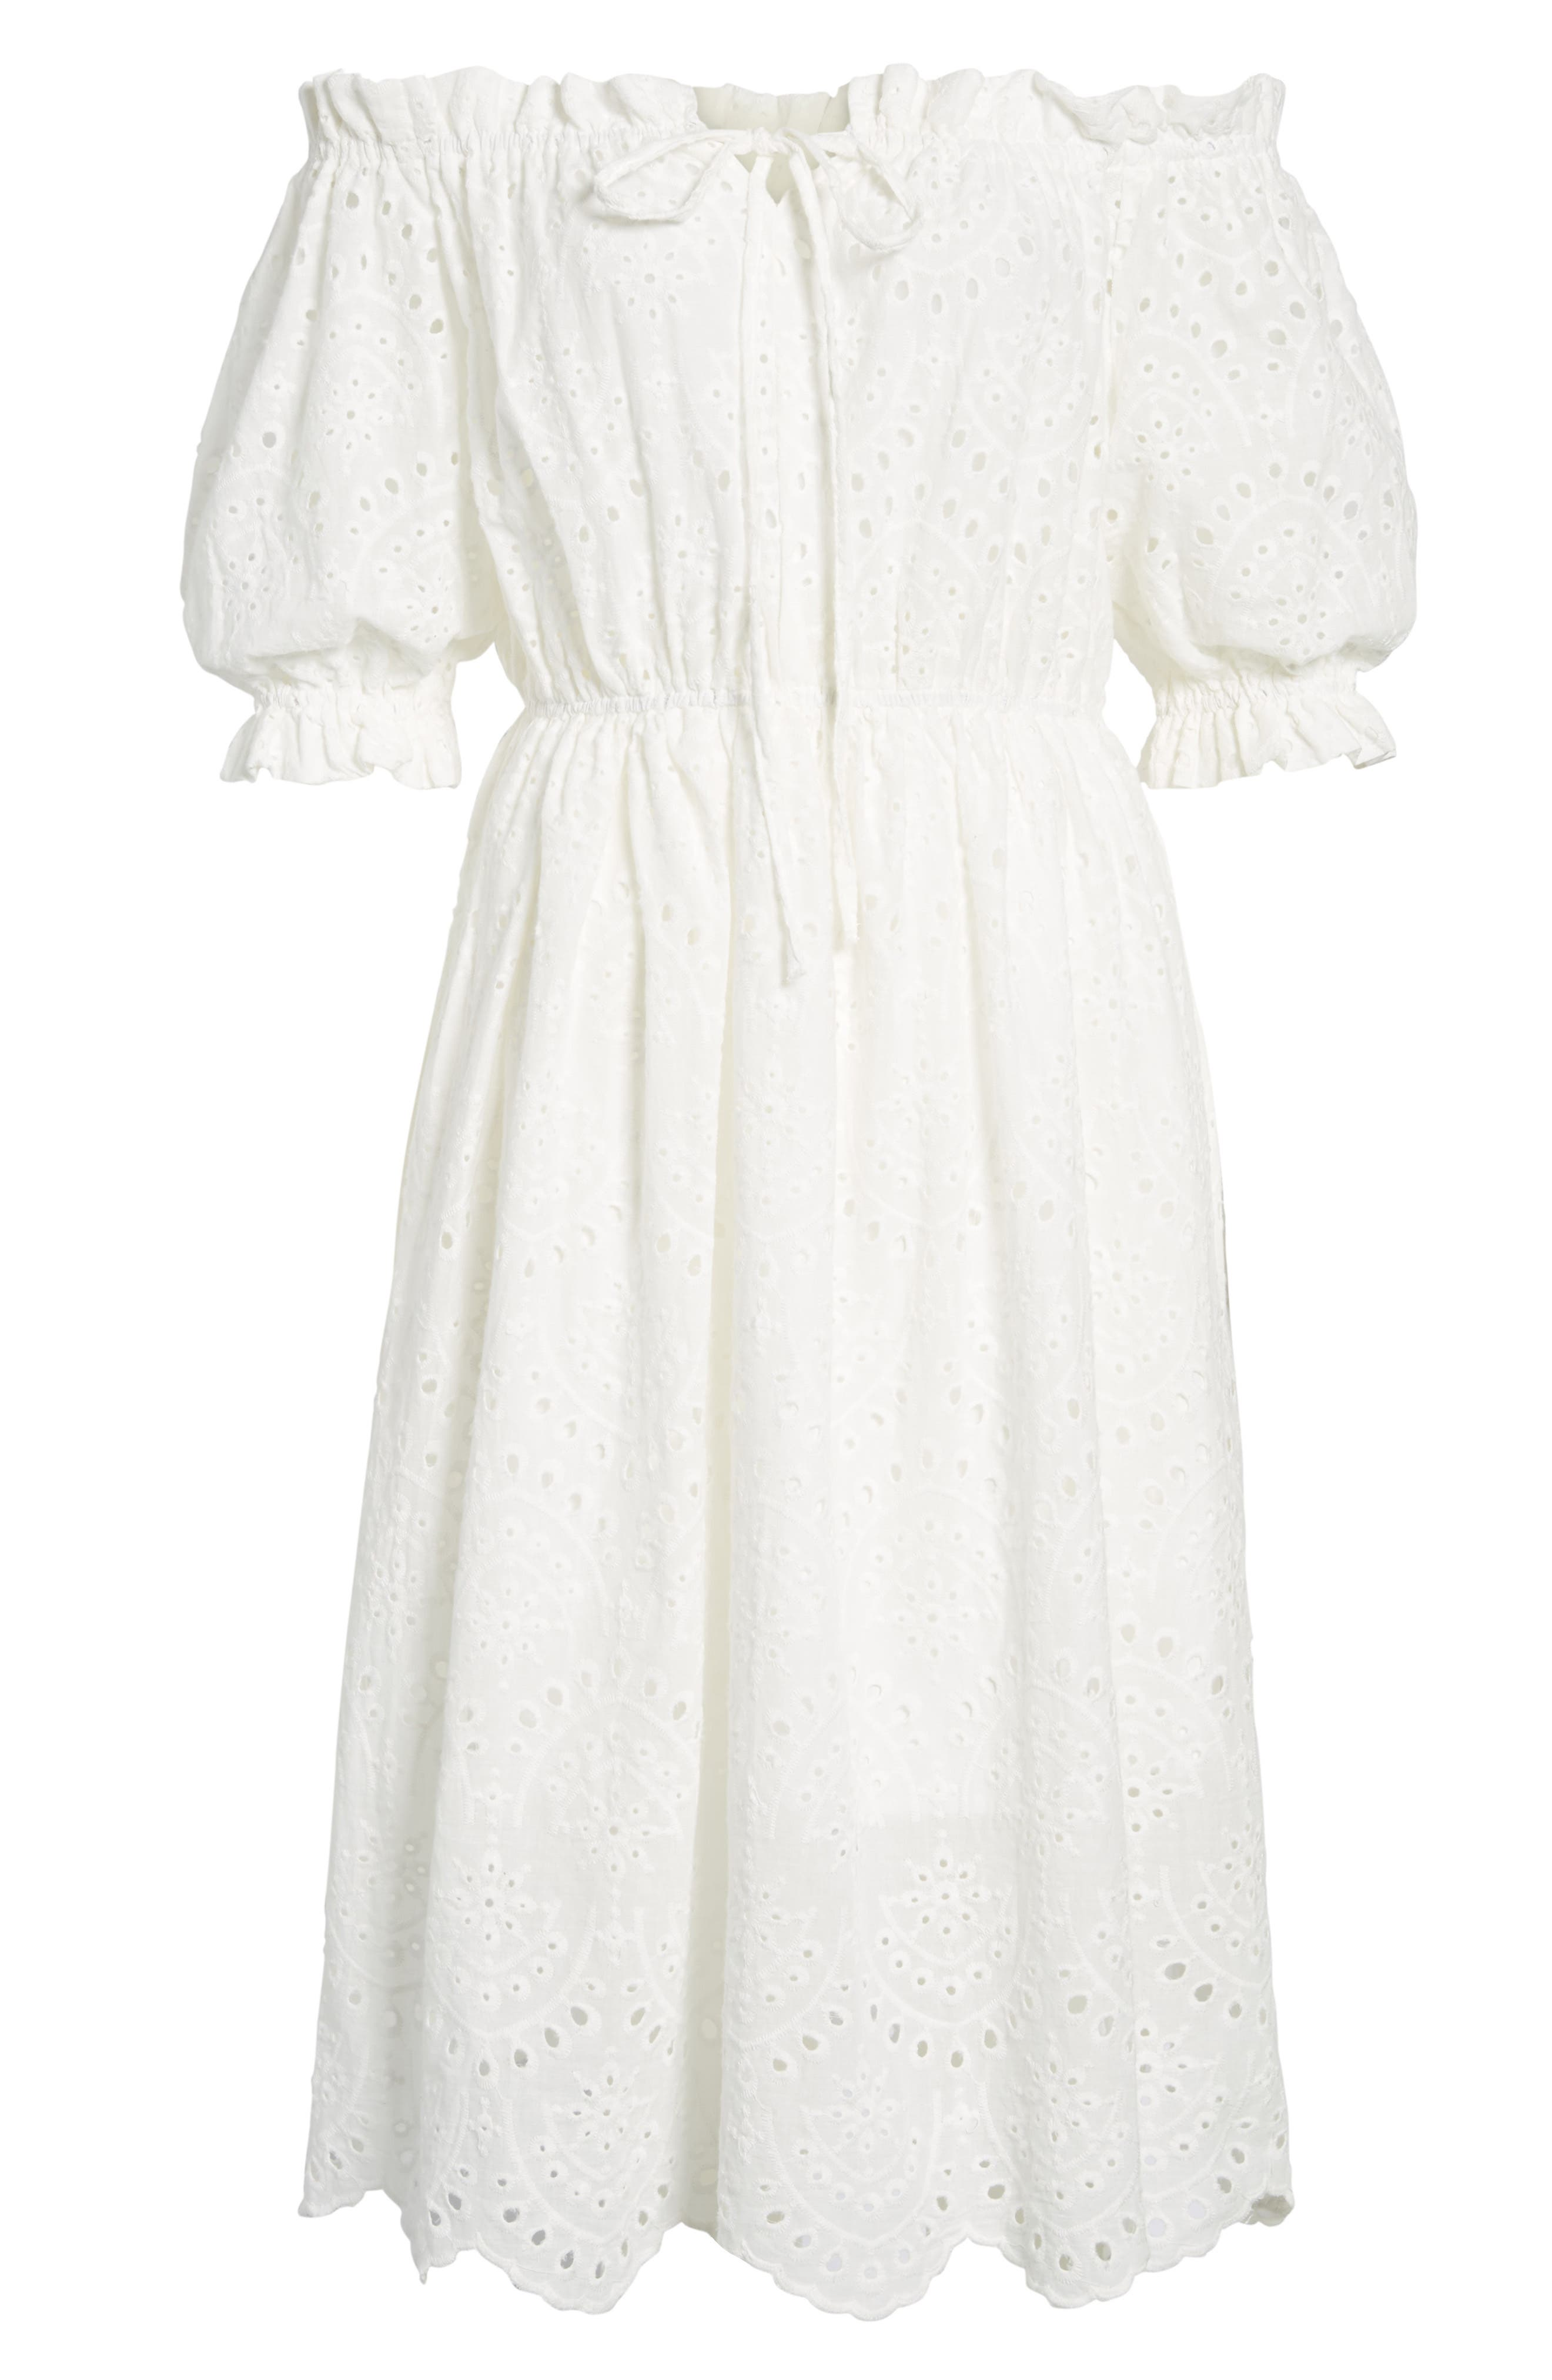 The White Party Off the Shoulder Dress,                             Alternate thumbnail 6, color,                             100